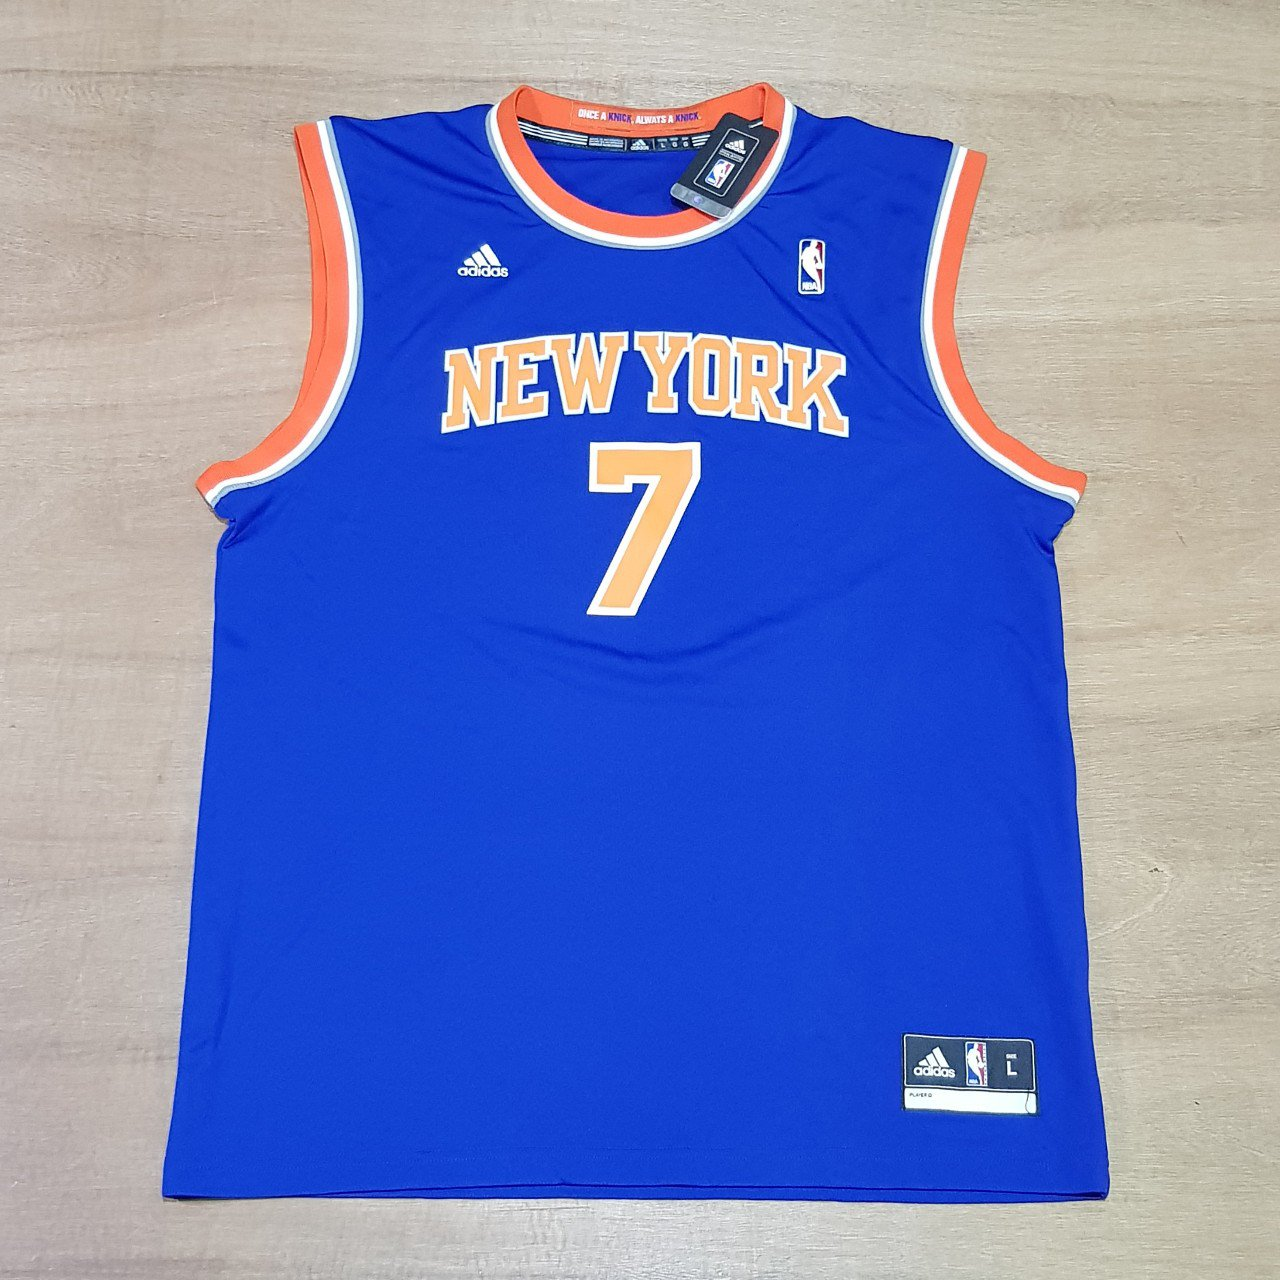 New with tags New York Knicks NBA Basketball Jersey by L 24